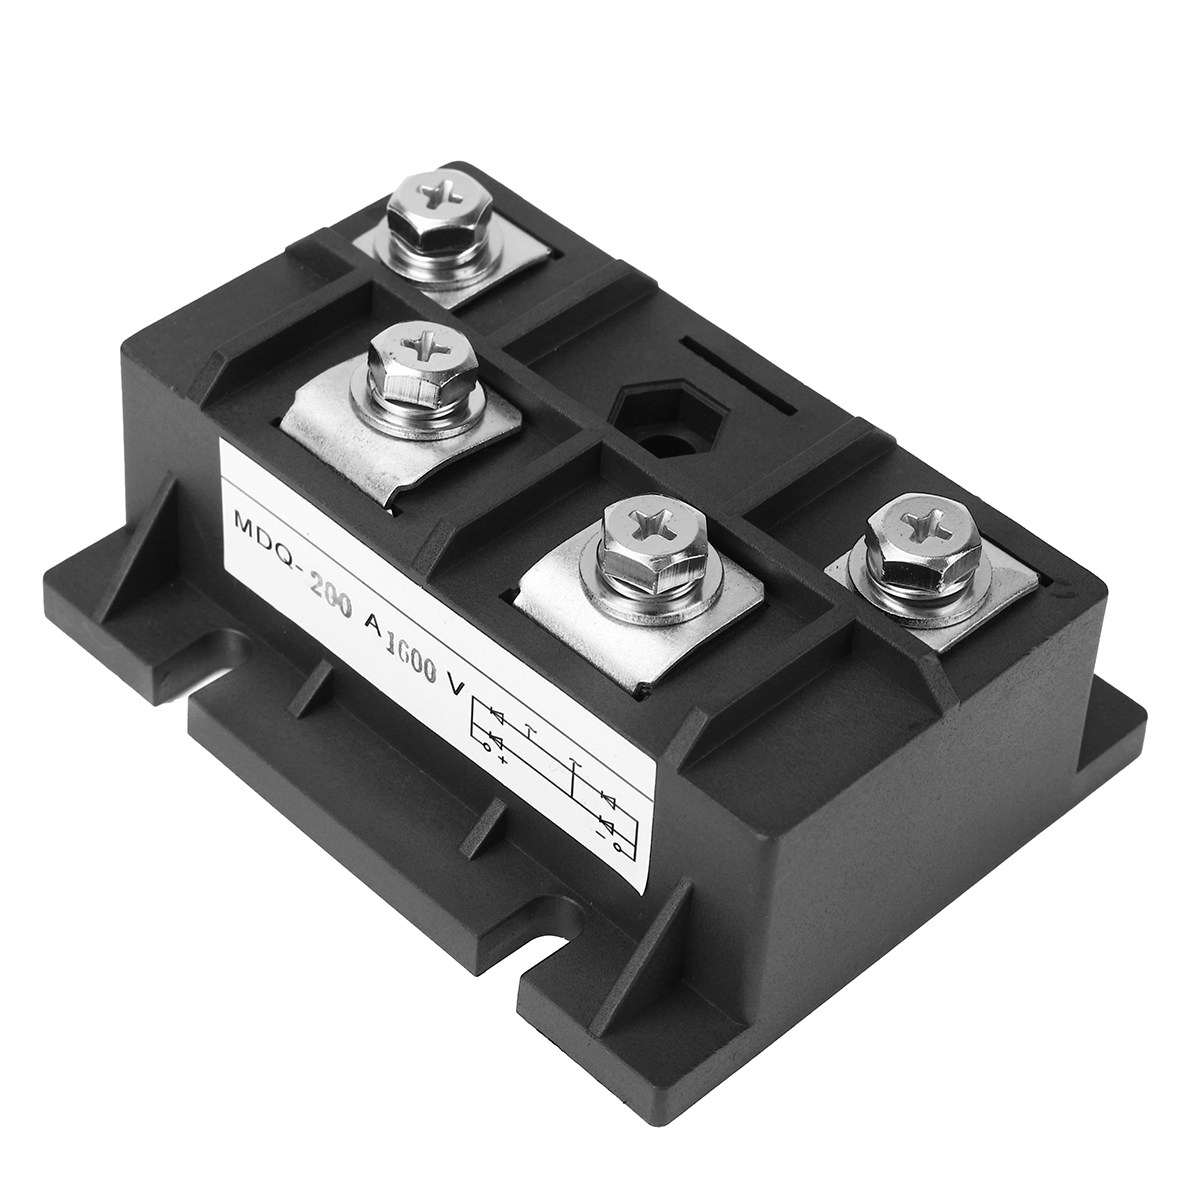 1PC 122241581320 150A 1600V Diode Module Single Phase Bridge Rectifier MDQ-200A Rectifiers Electronic Components & Supplies